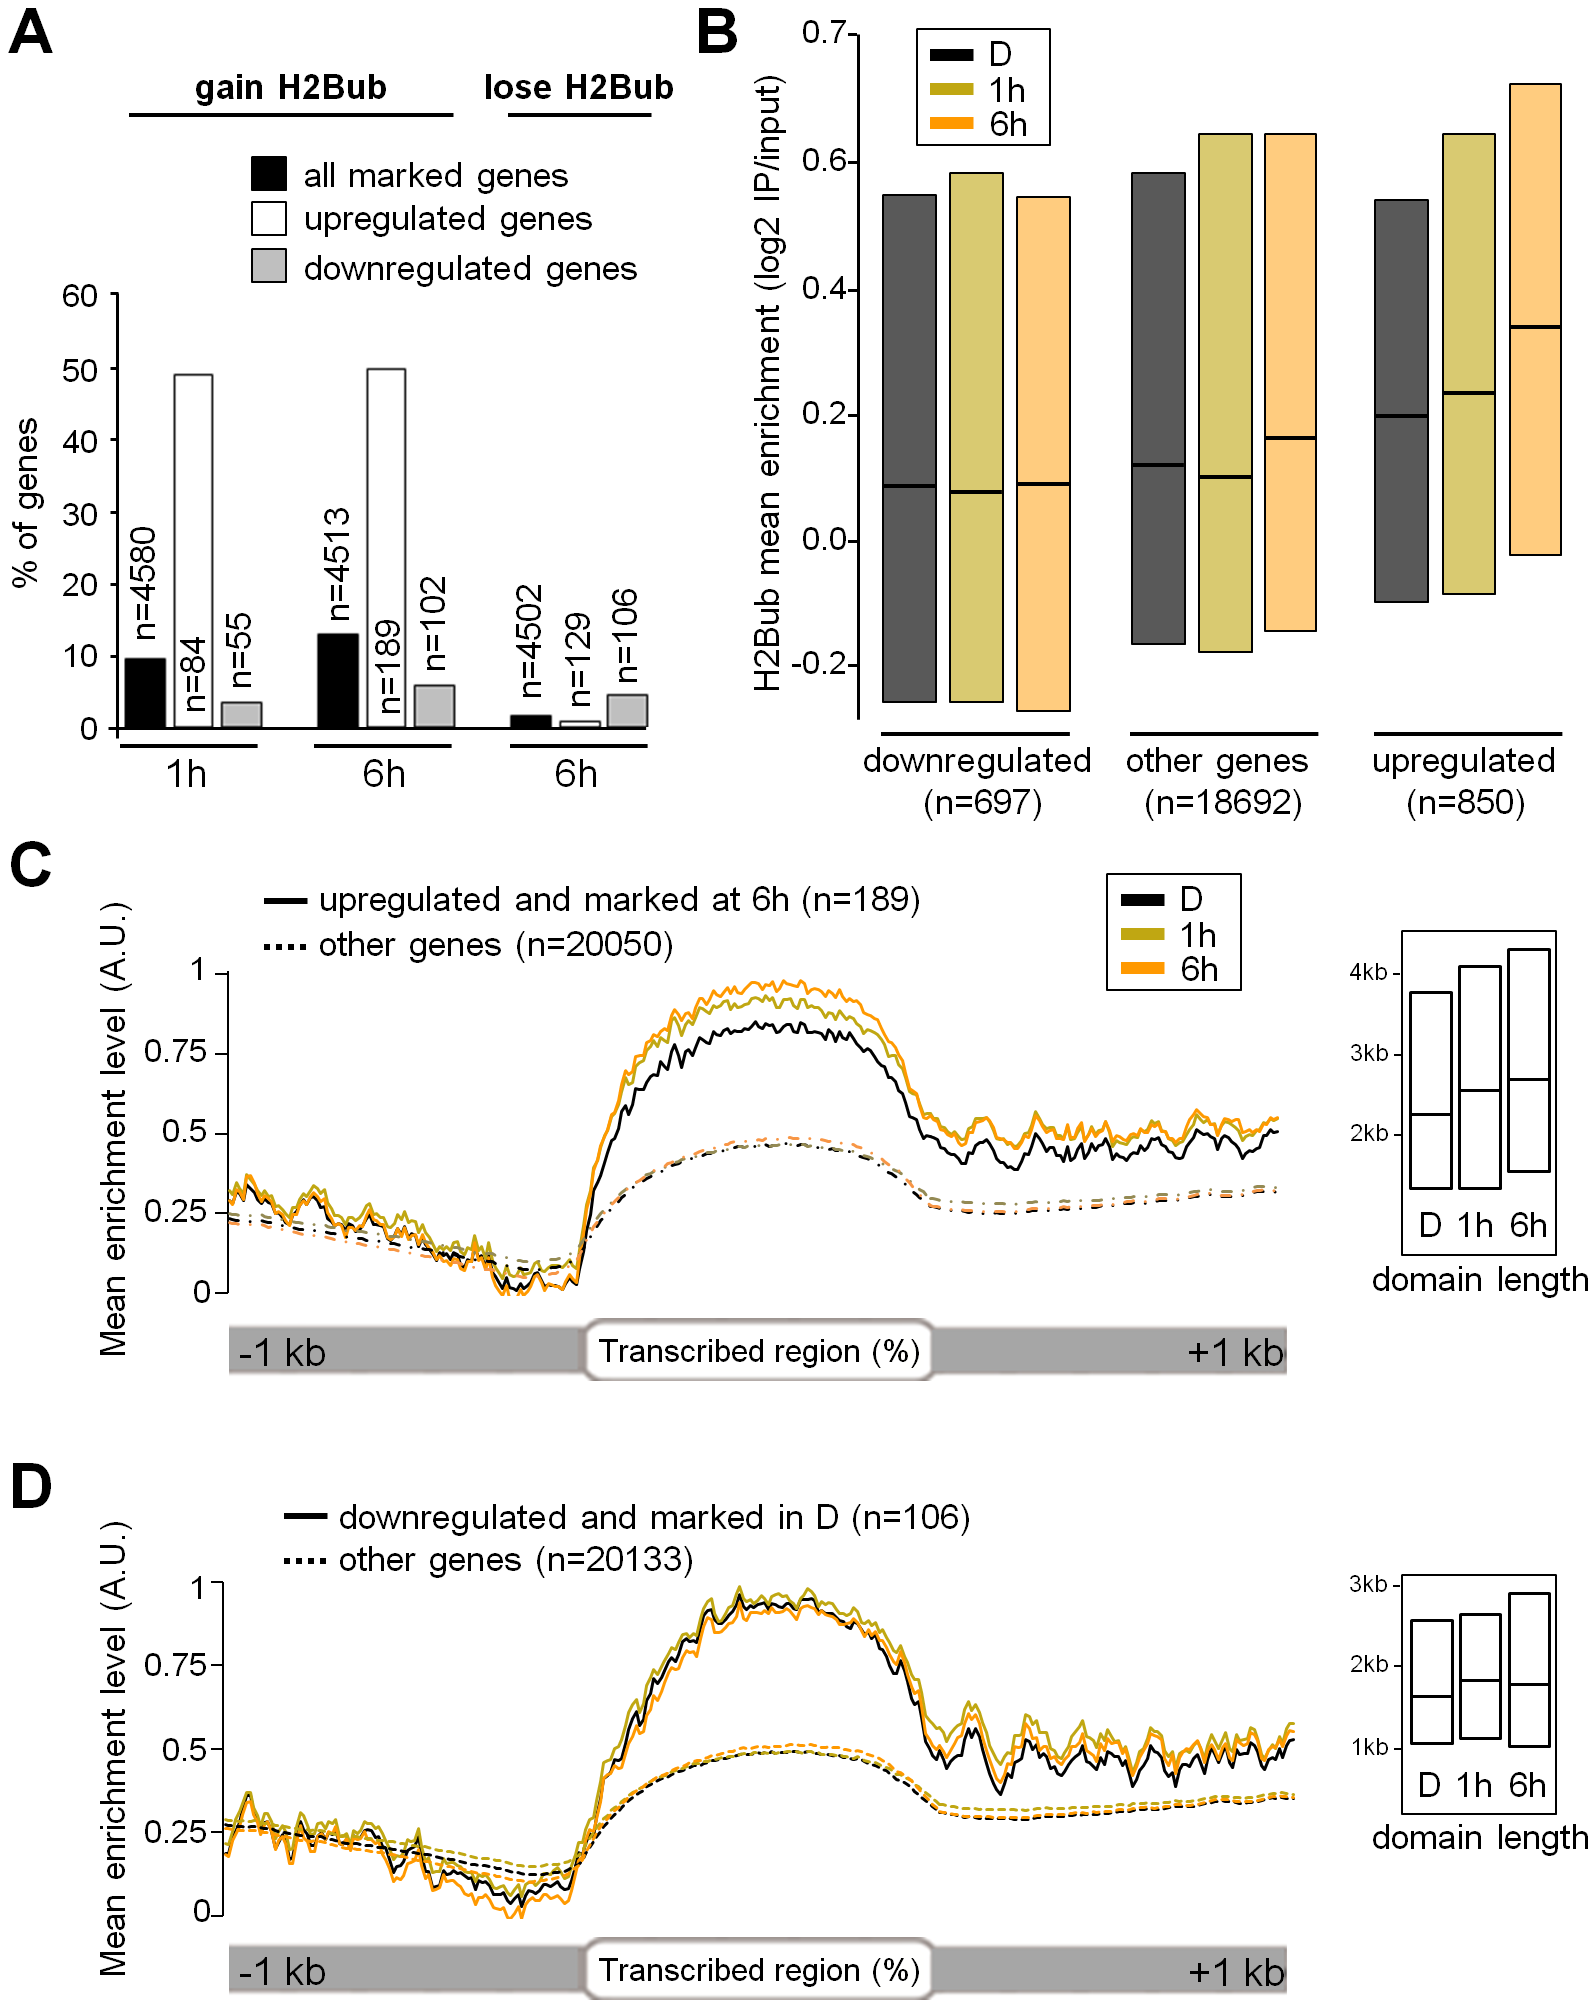 Light-induced upregulation associates with H2Bub enrichment over transcribed regions.